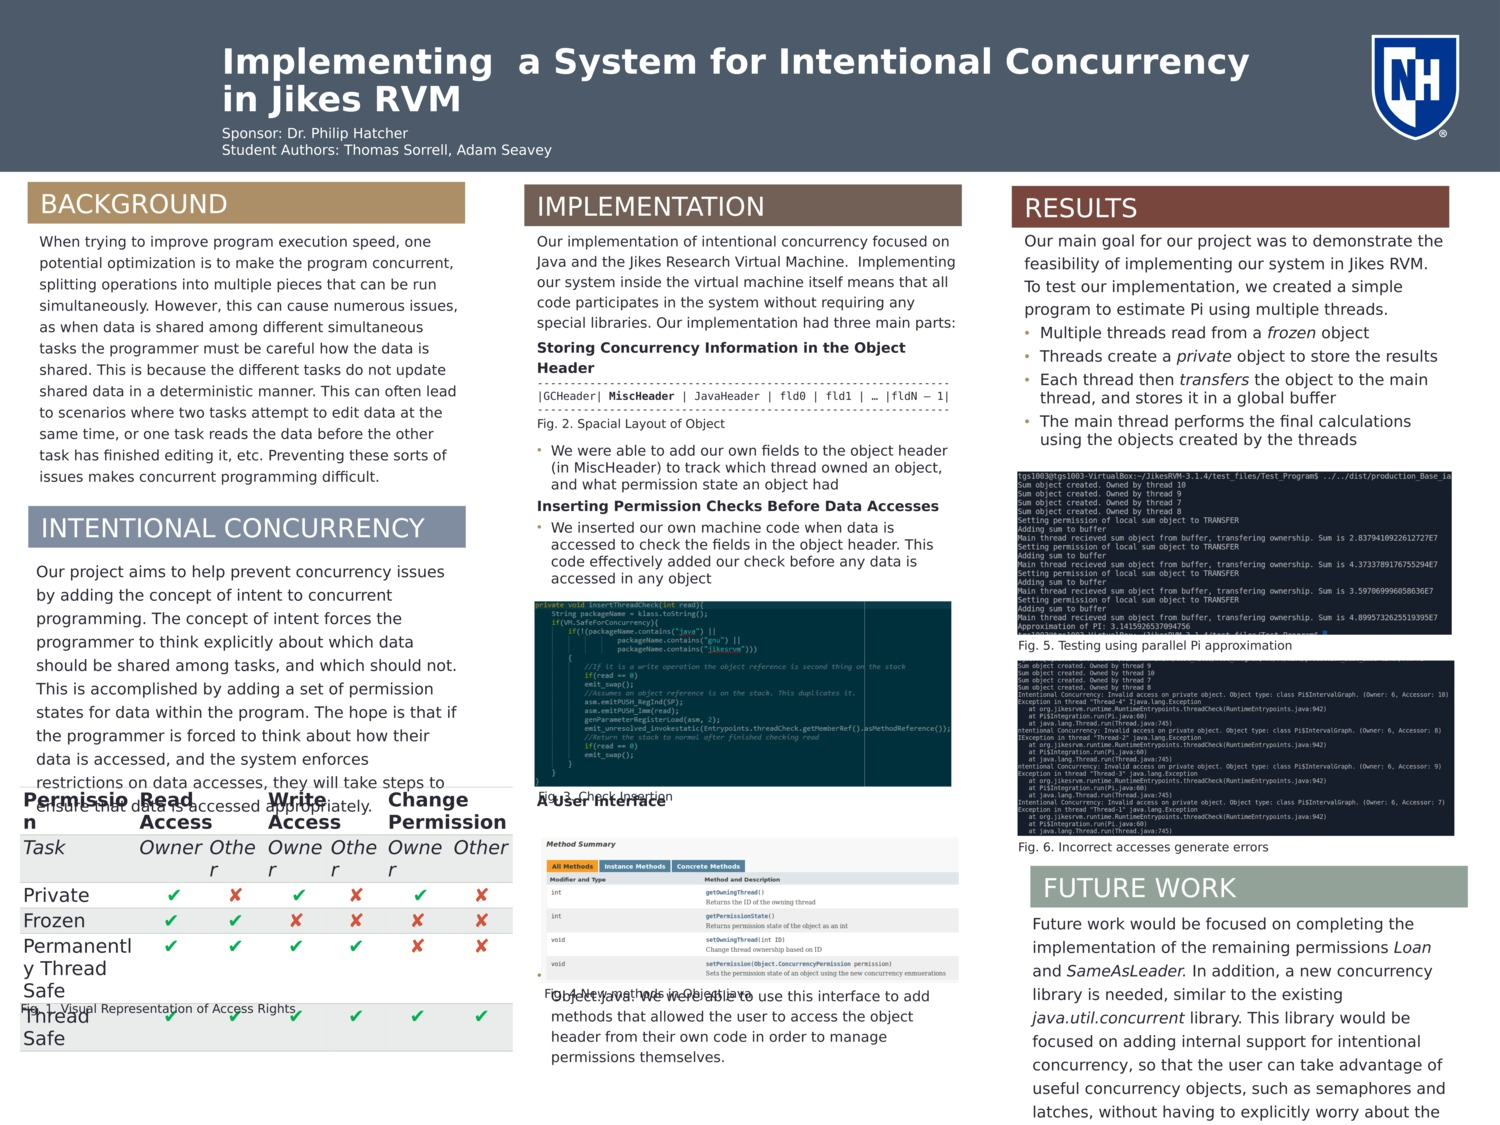 Implementing A System For Intentional Concurrency In Jikes Rvm by tgs1003